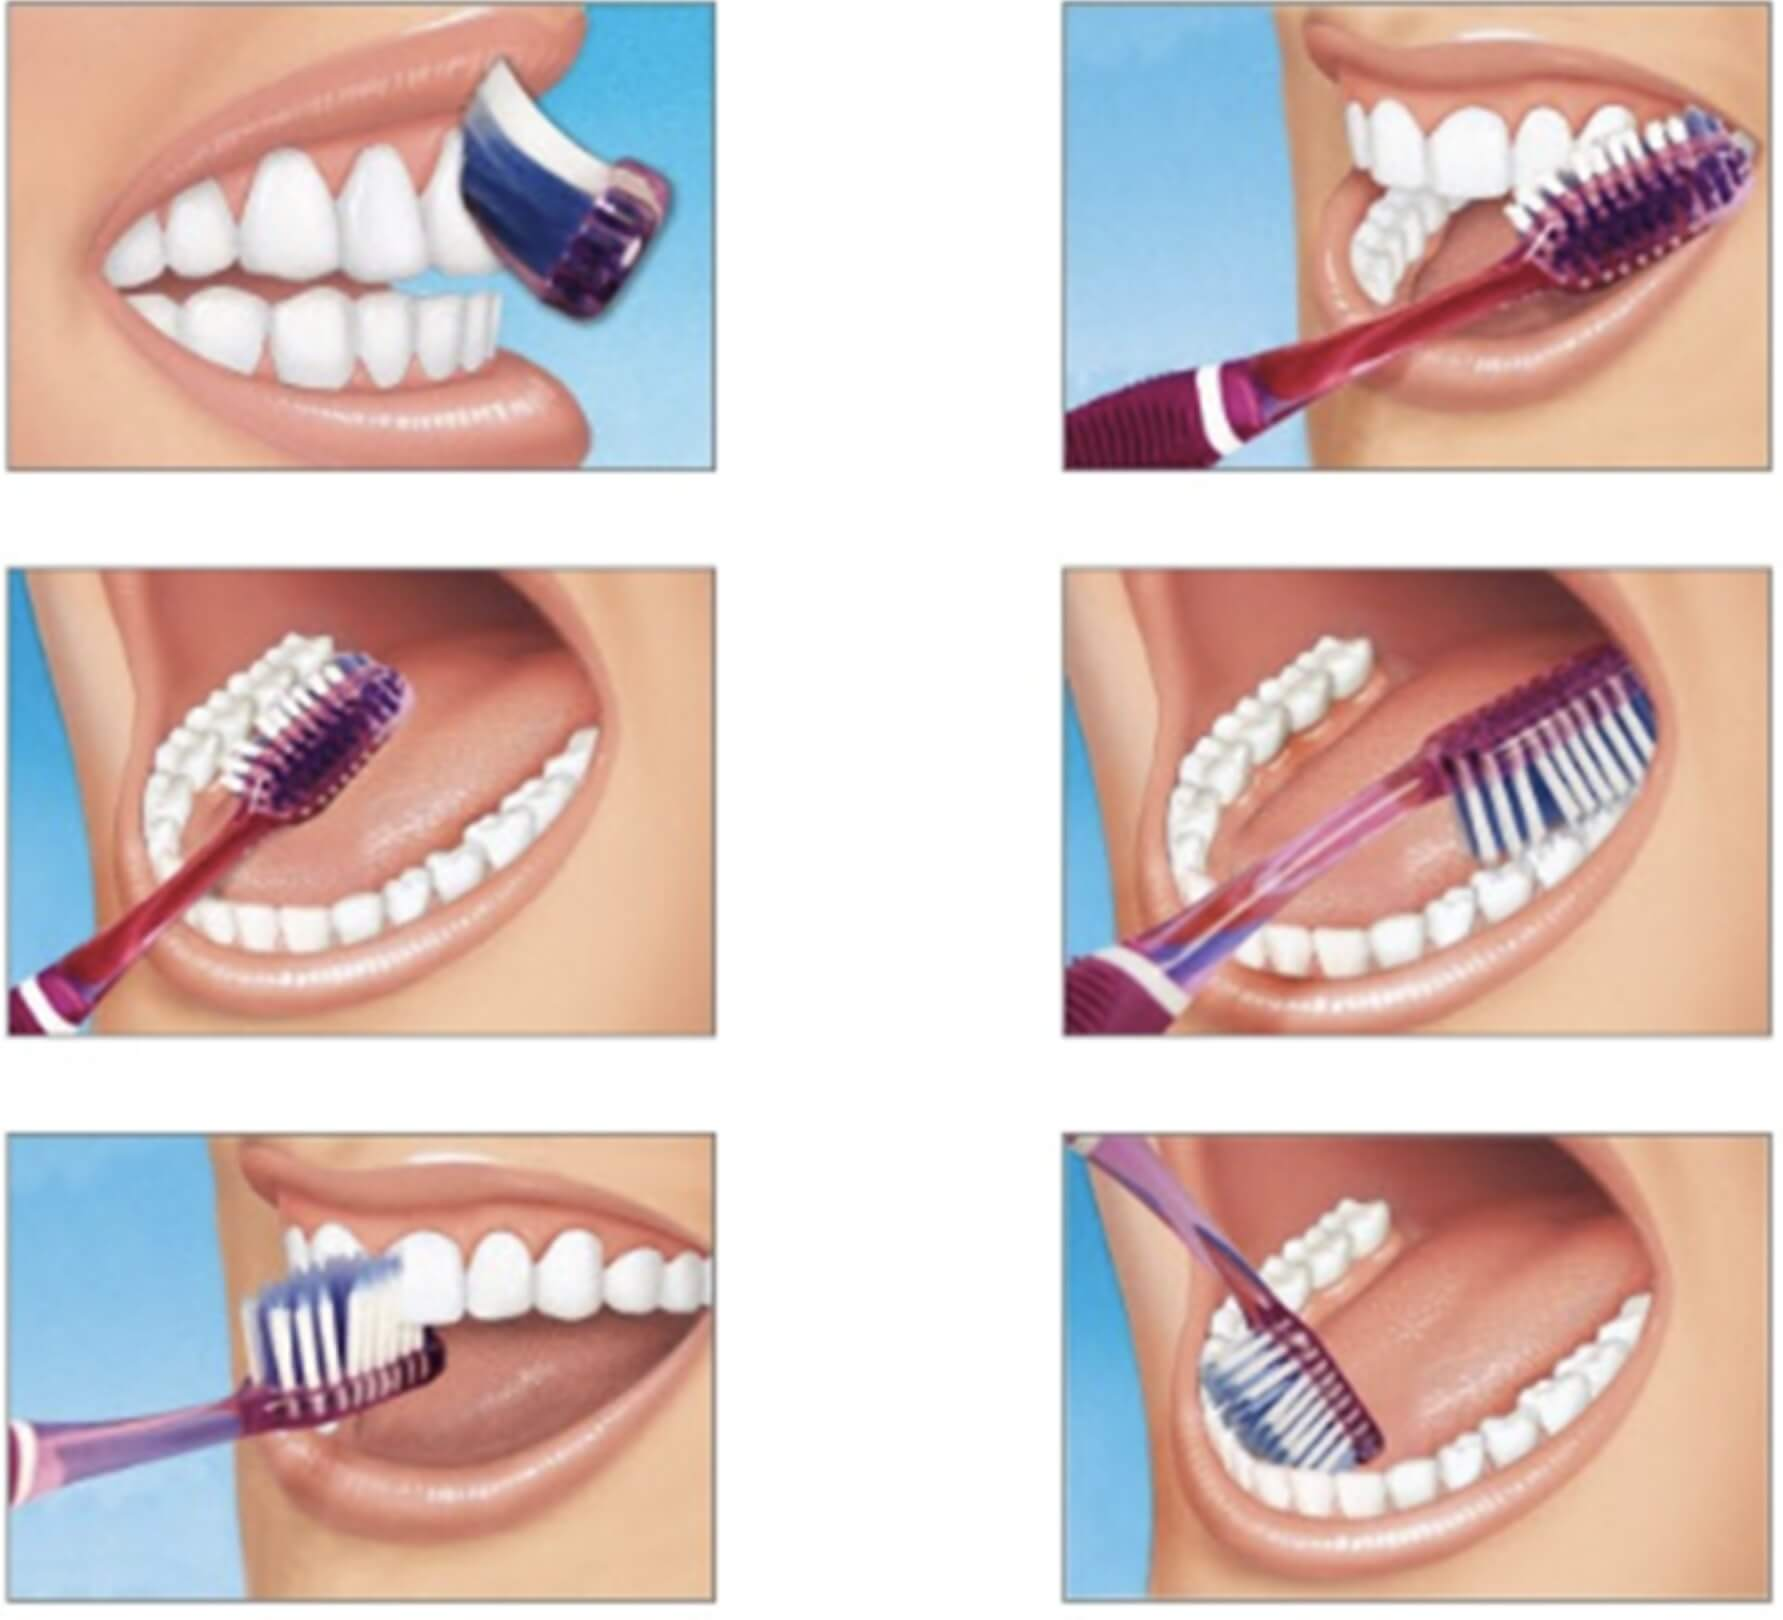 Tooth Brushing Techniques | News | Dentagama